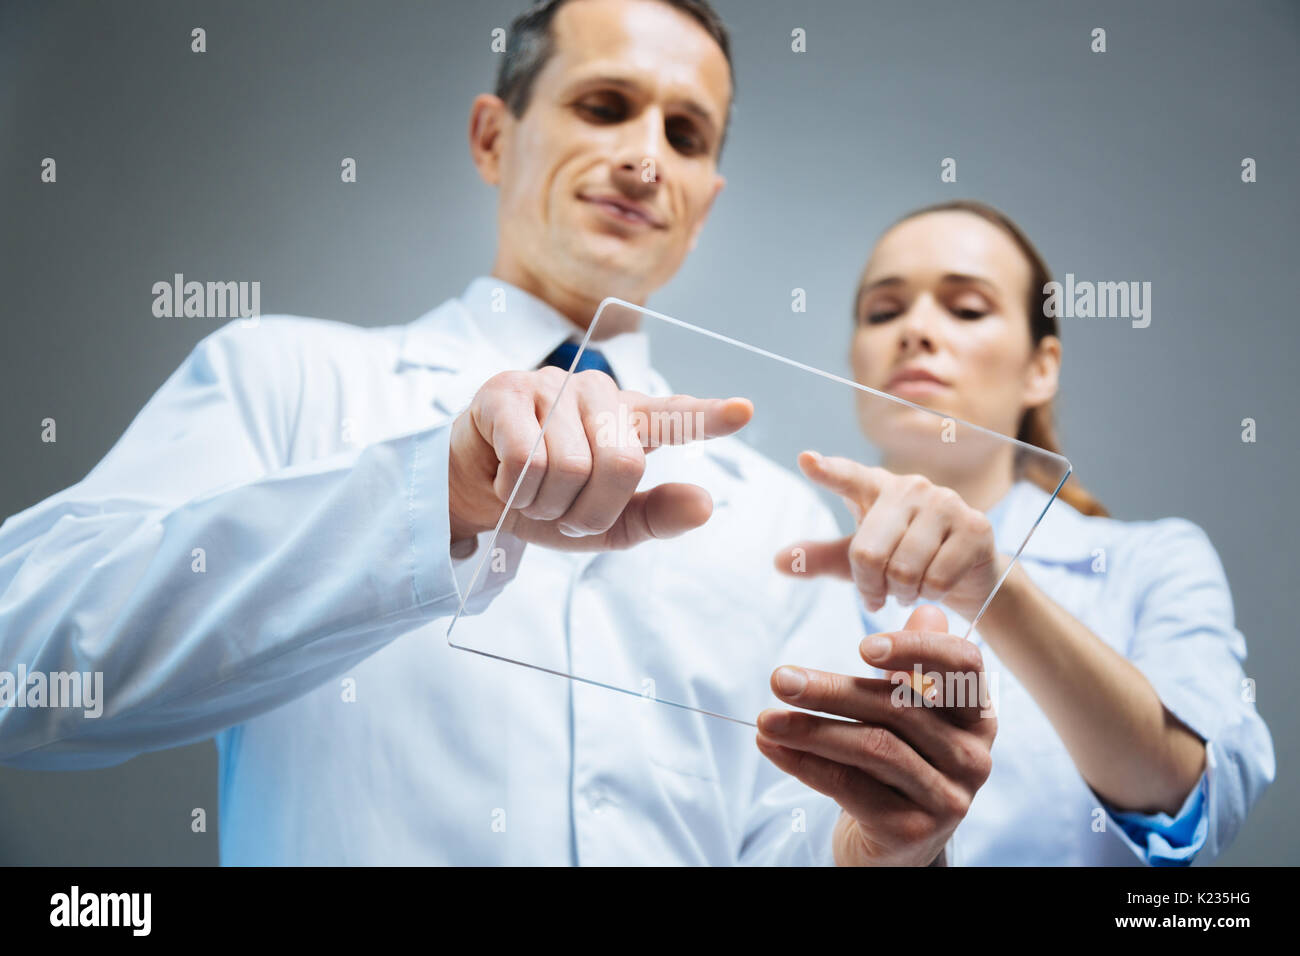 Colleagues working on transparent tablet together - Stock Image